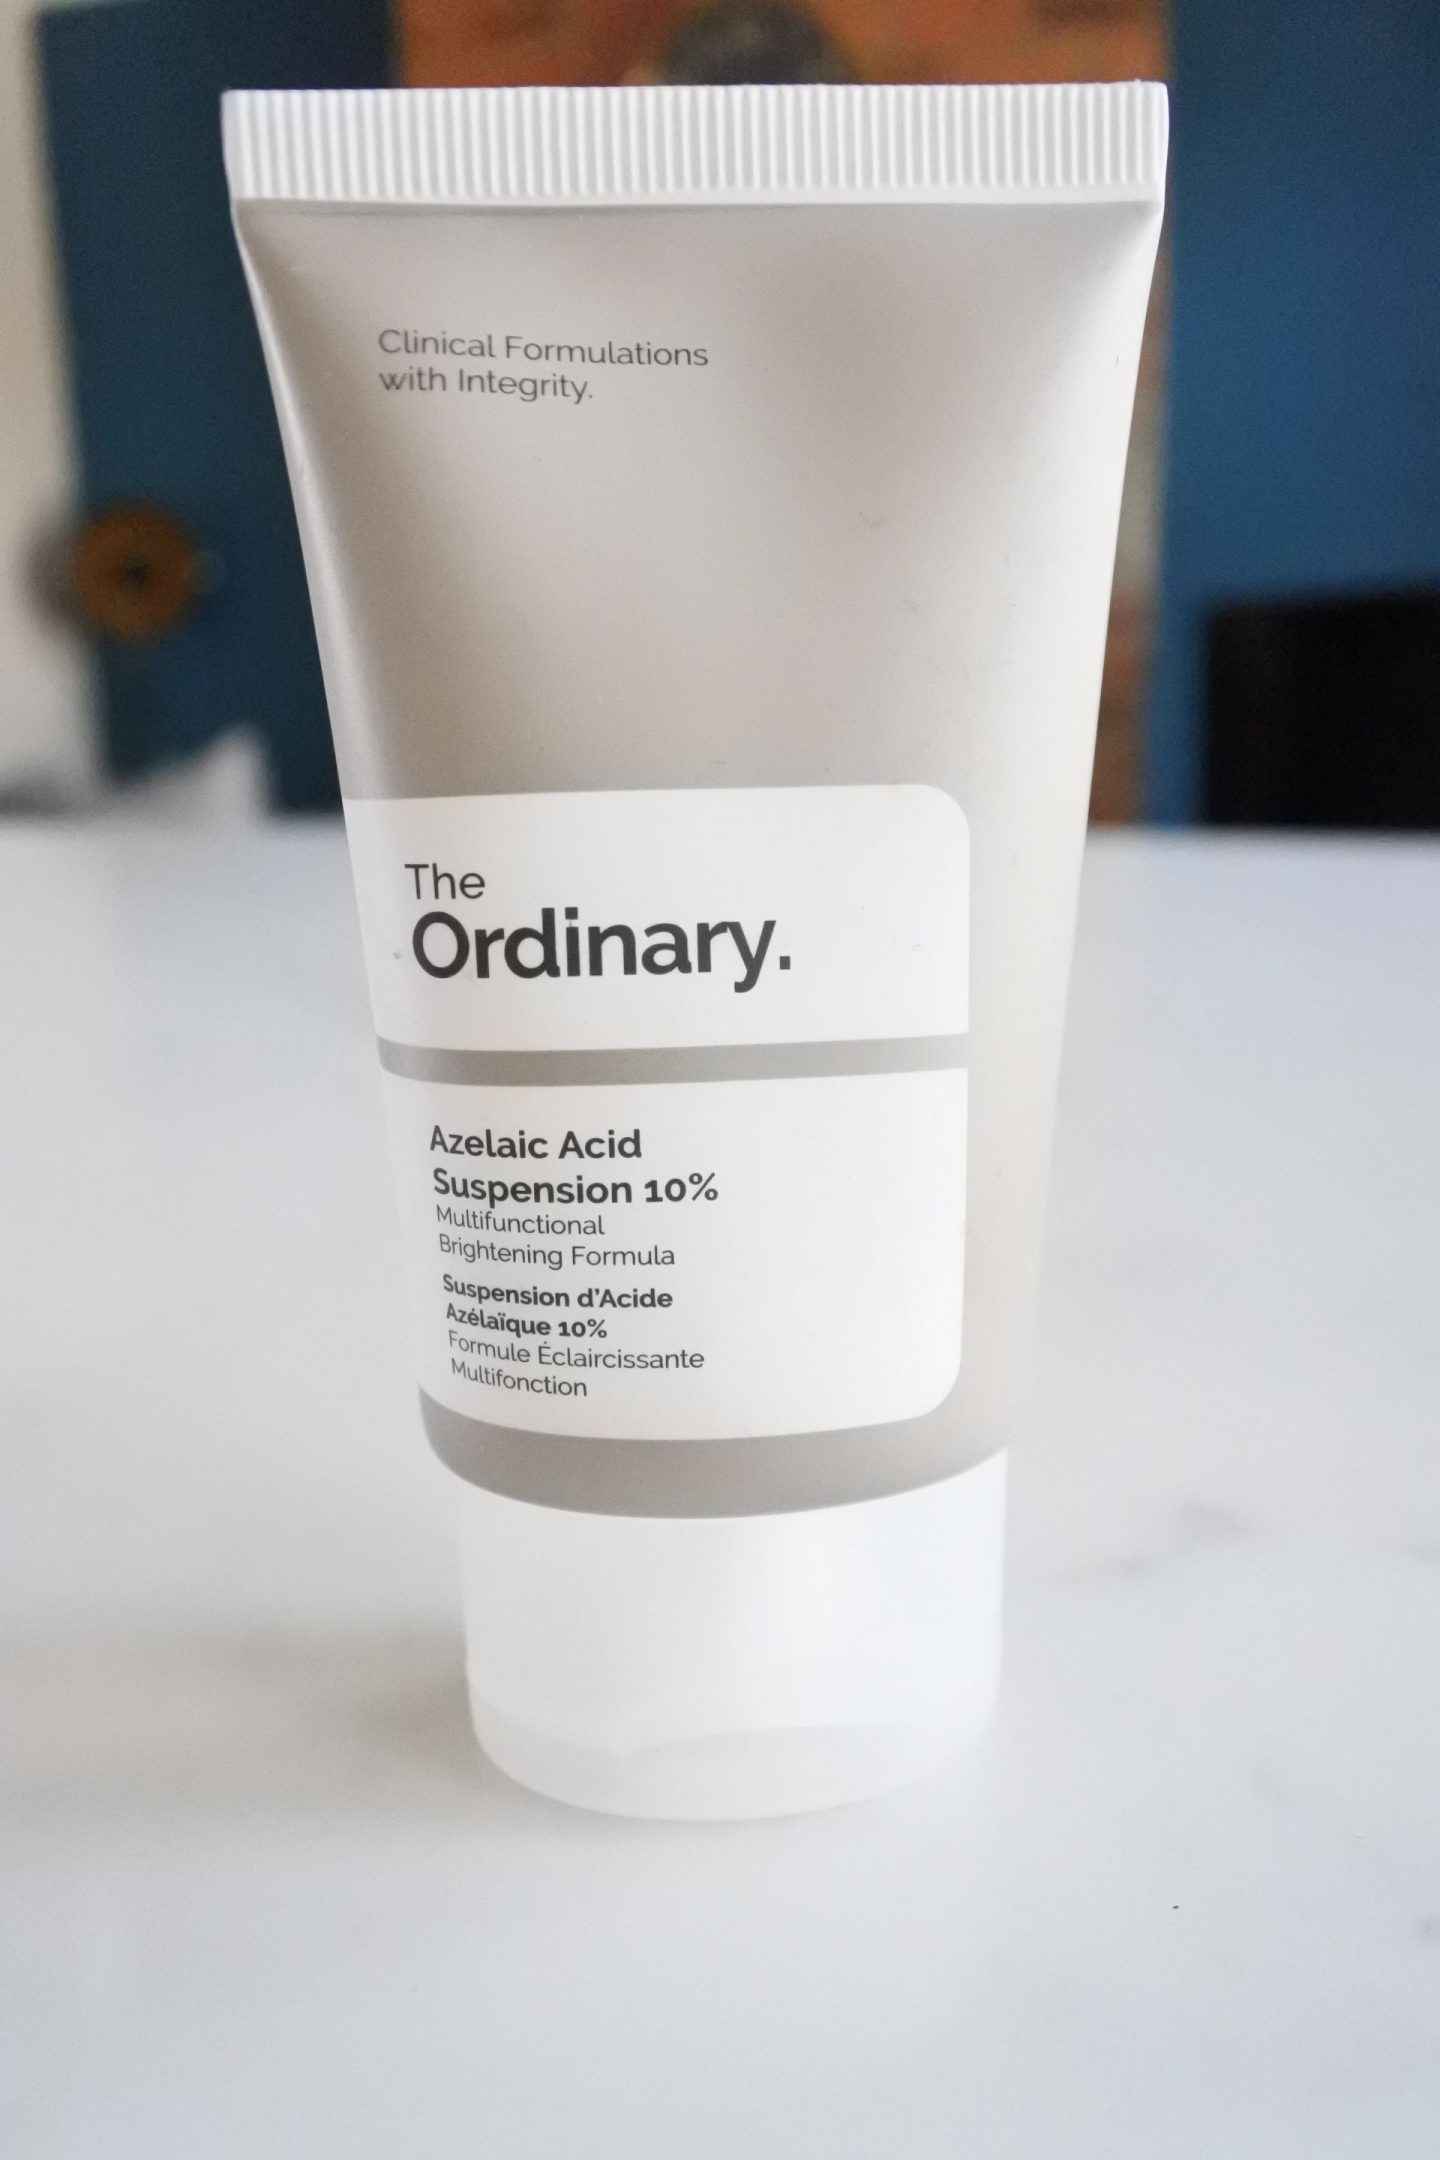 The Ordinary Azelaic Acid Suspension Review